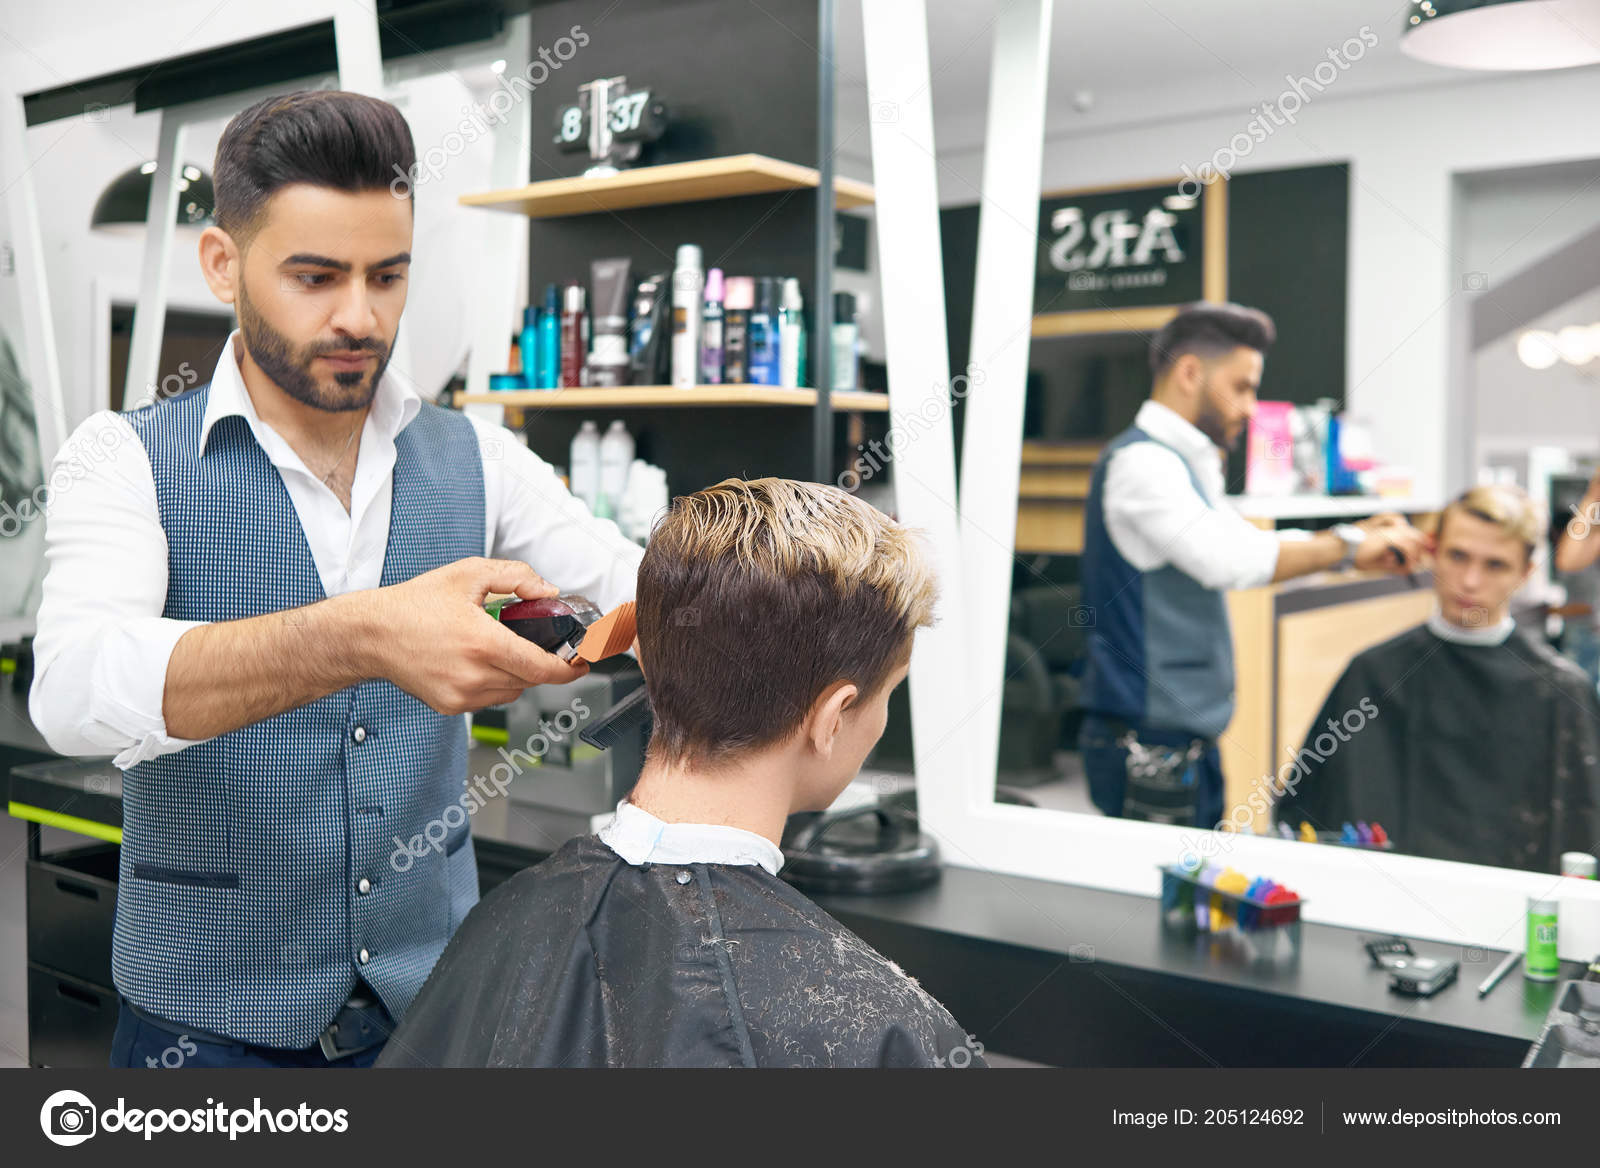 Doing New Modern Hairstyle For Young Man In Barber Shop Stock